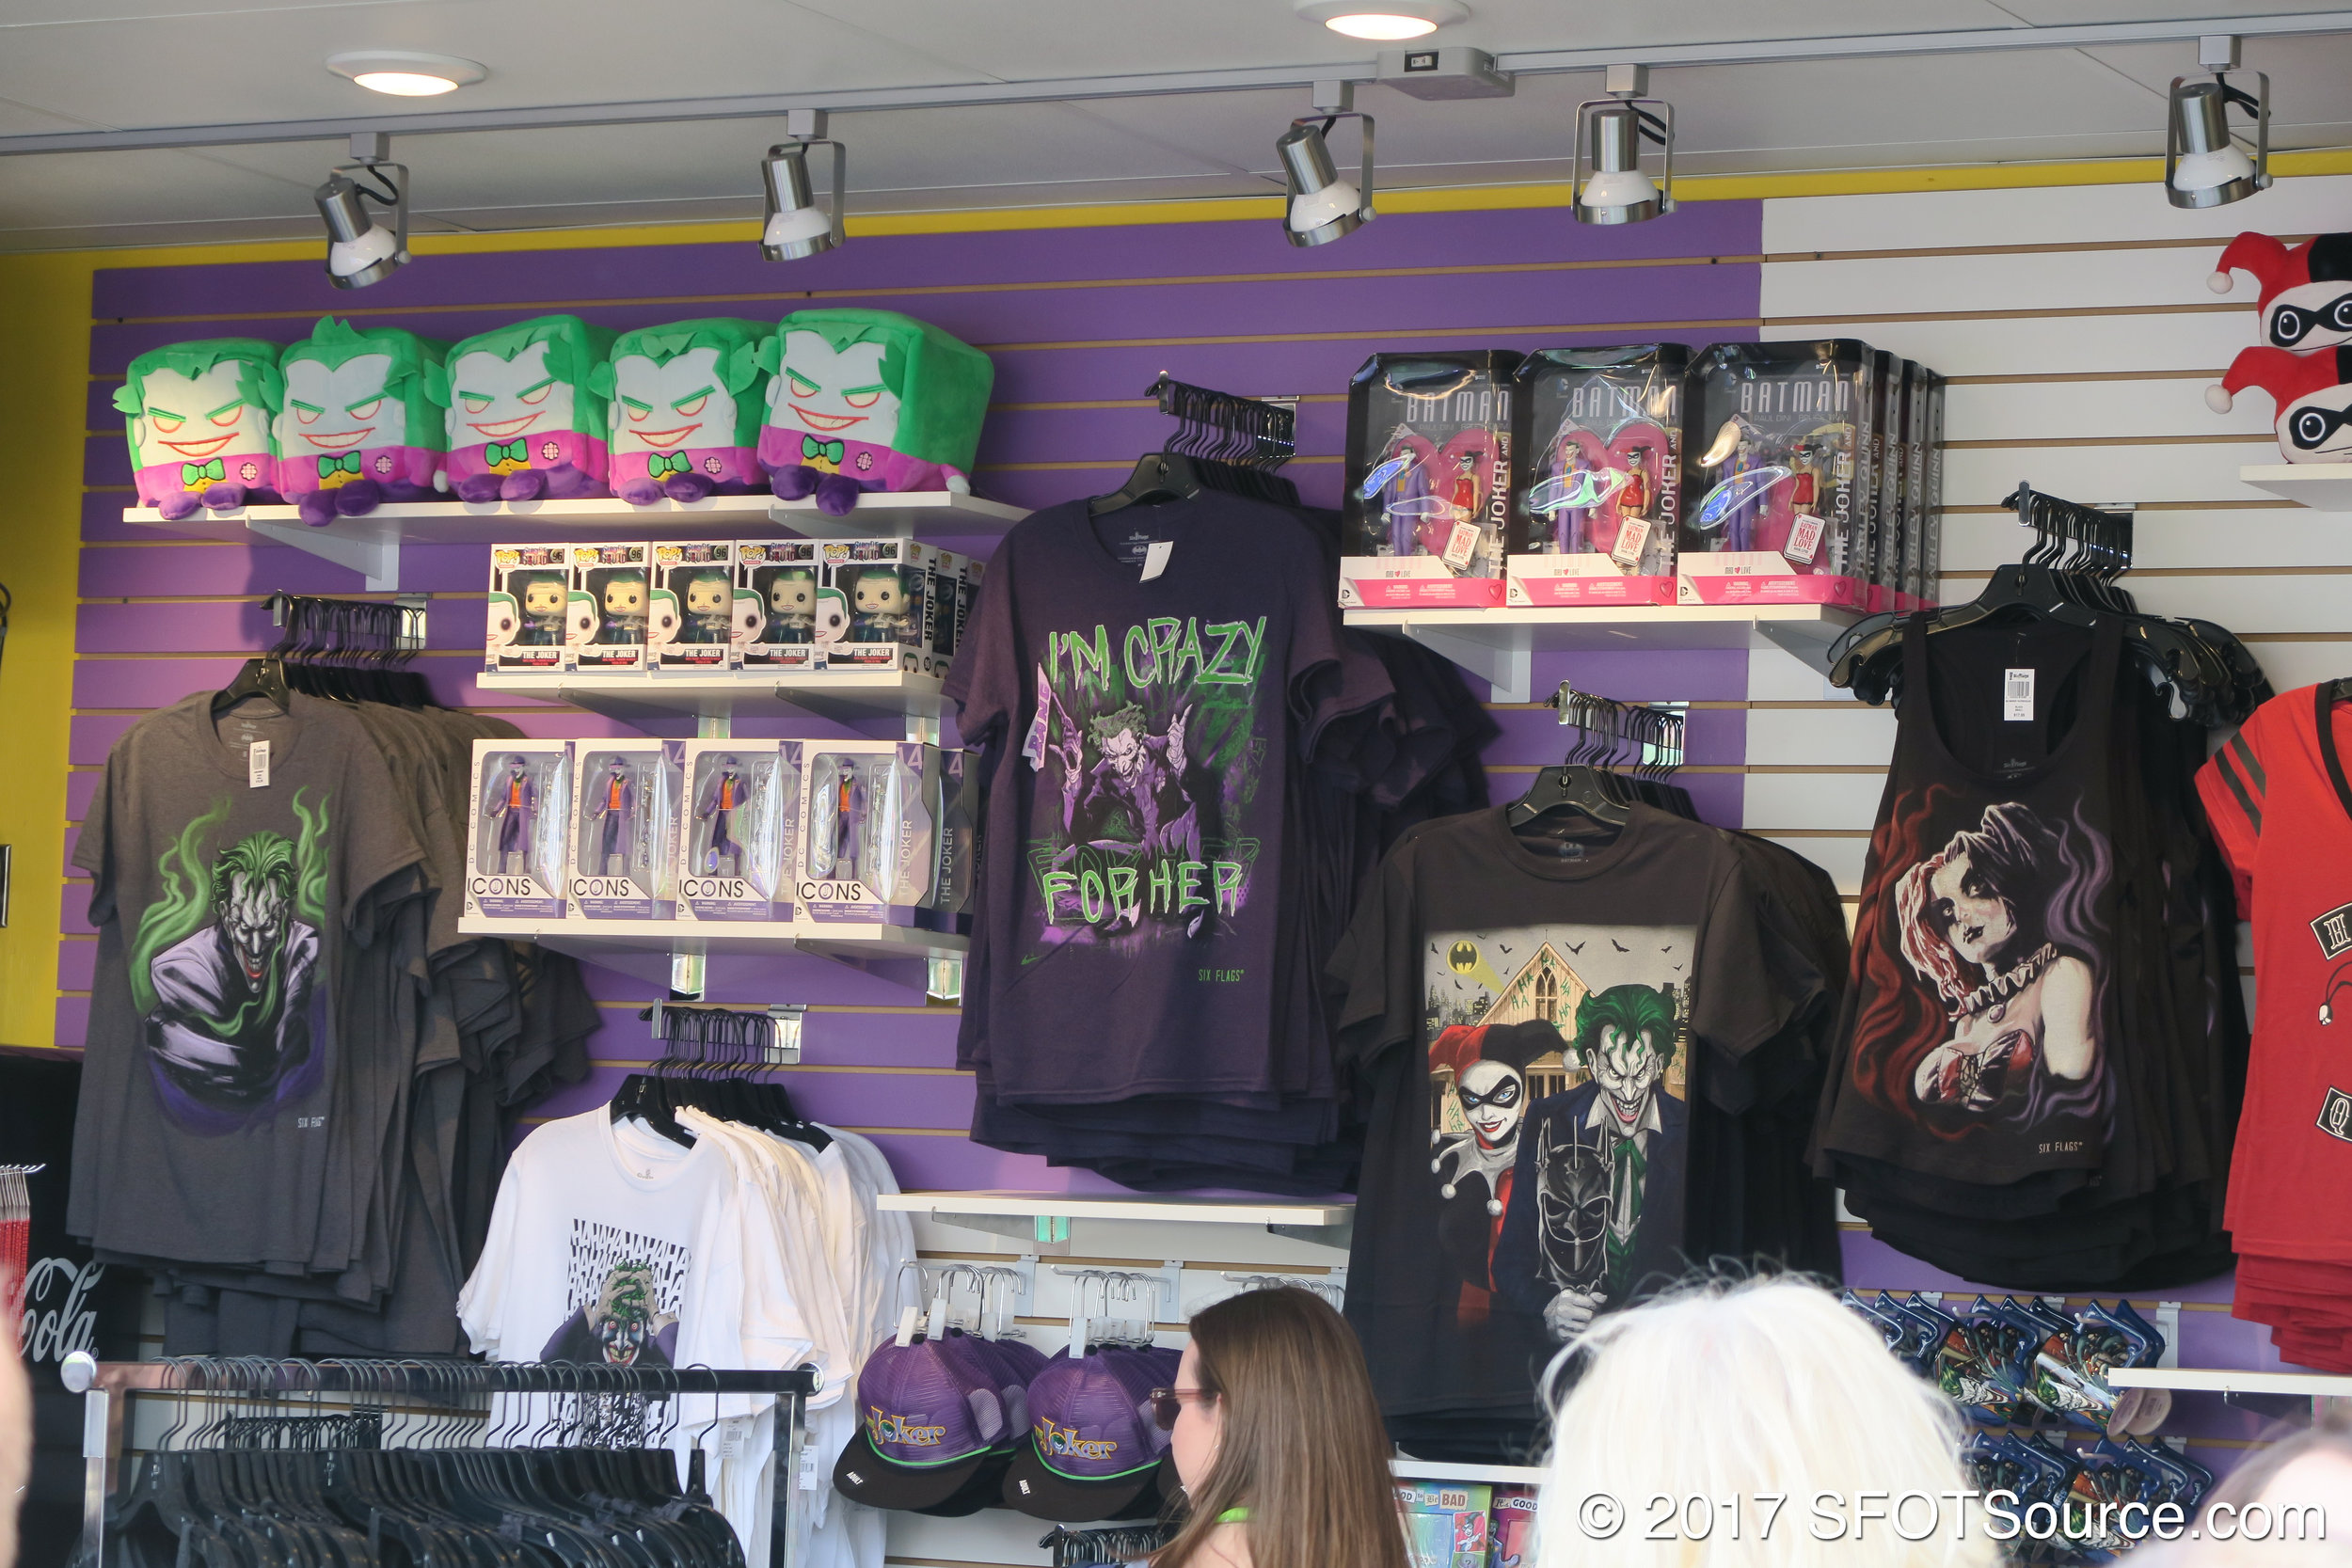 The shop is located in Gotham City at the exit of The Joker.